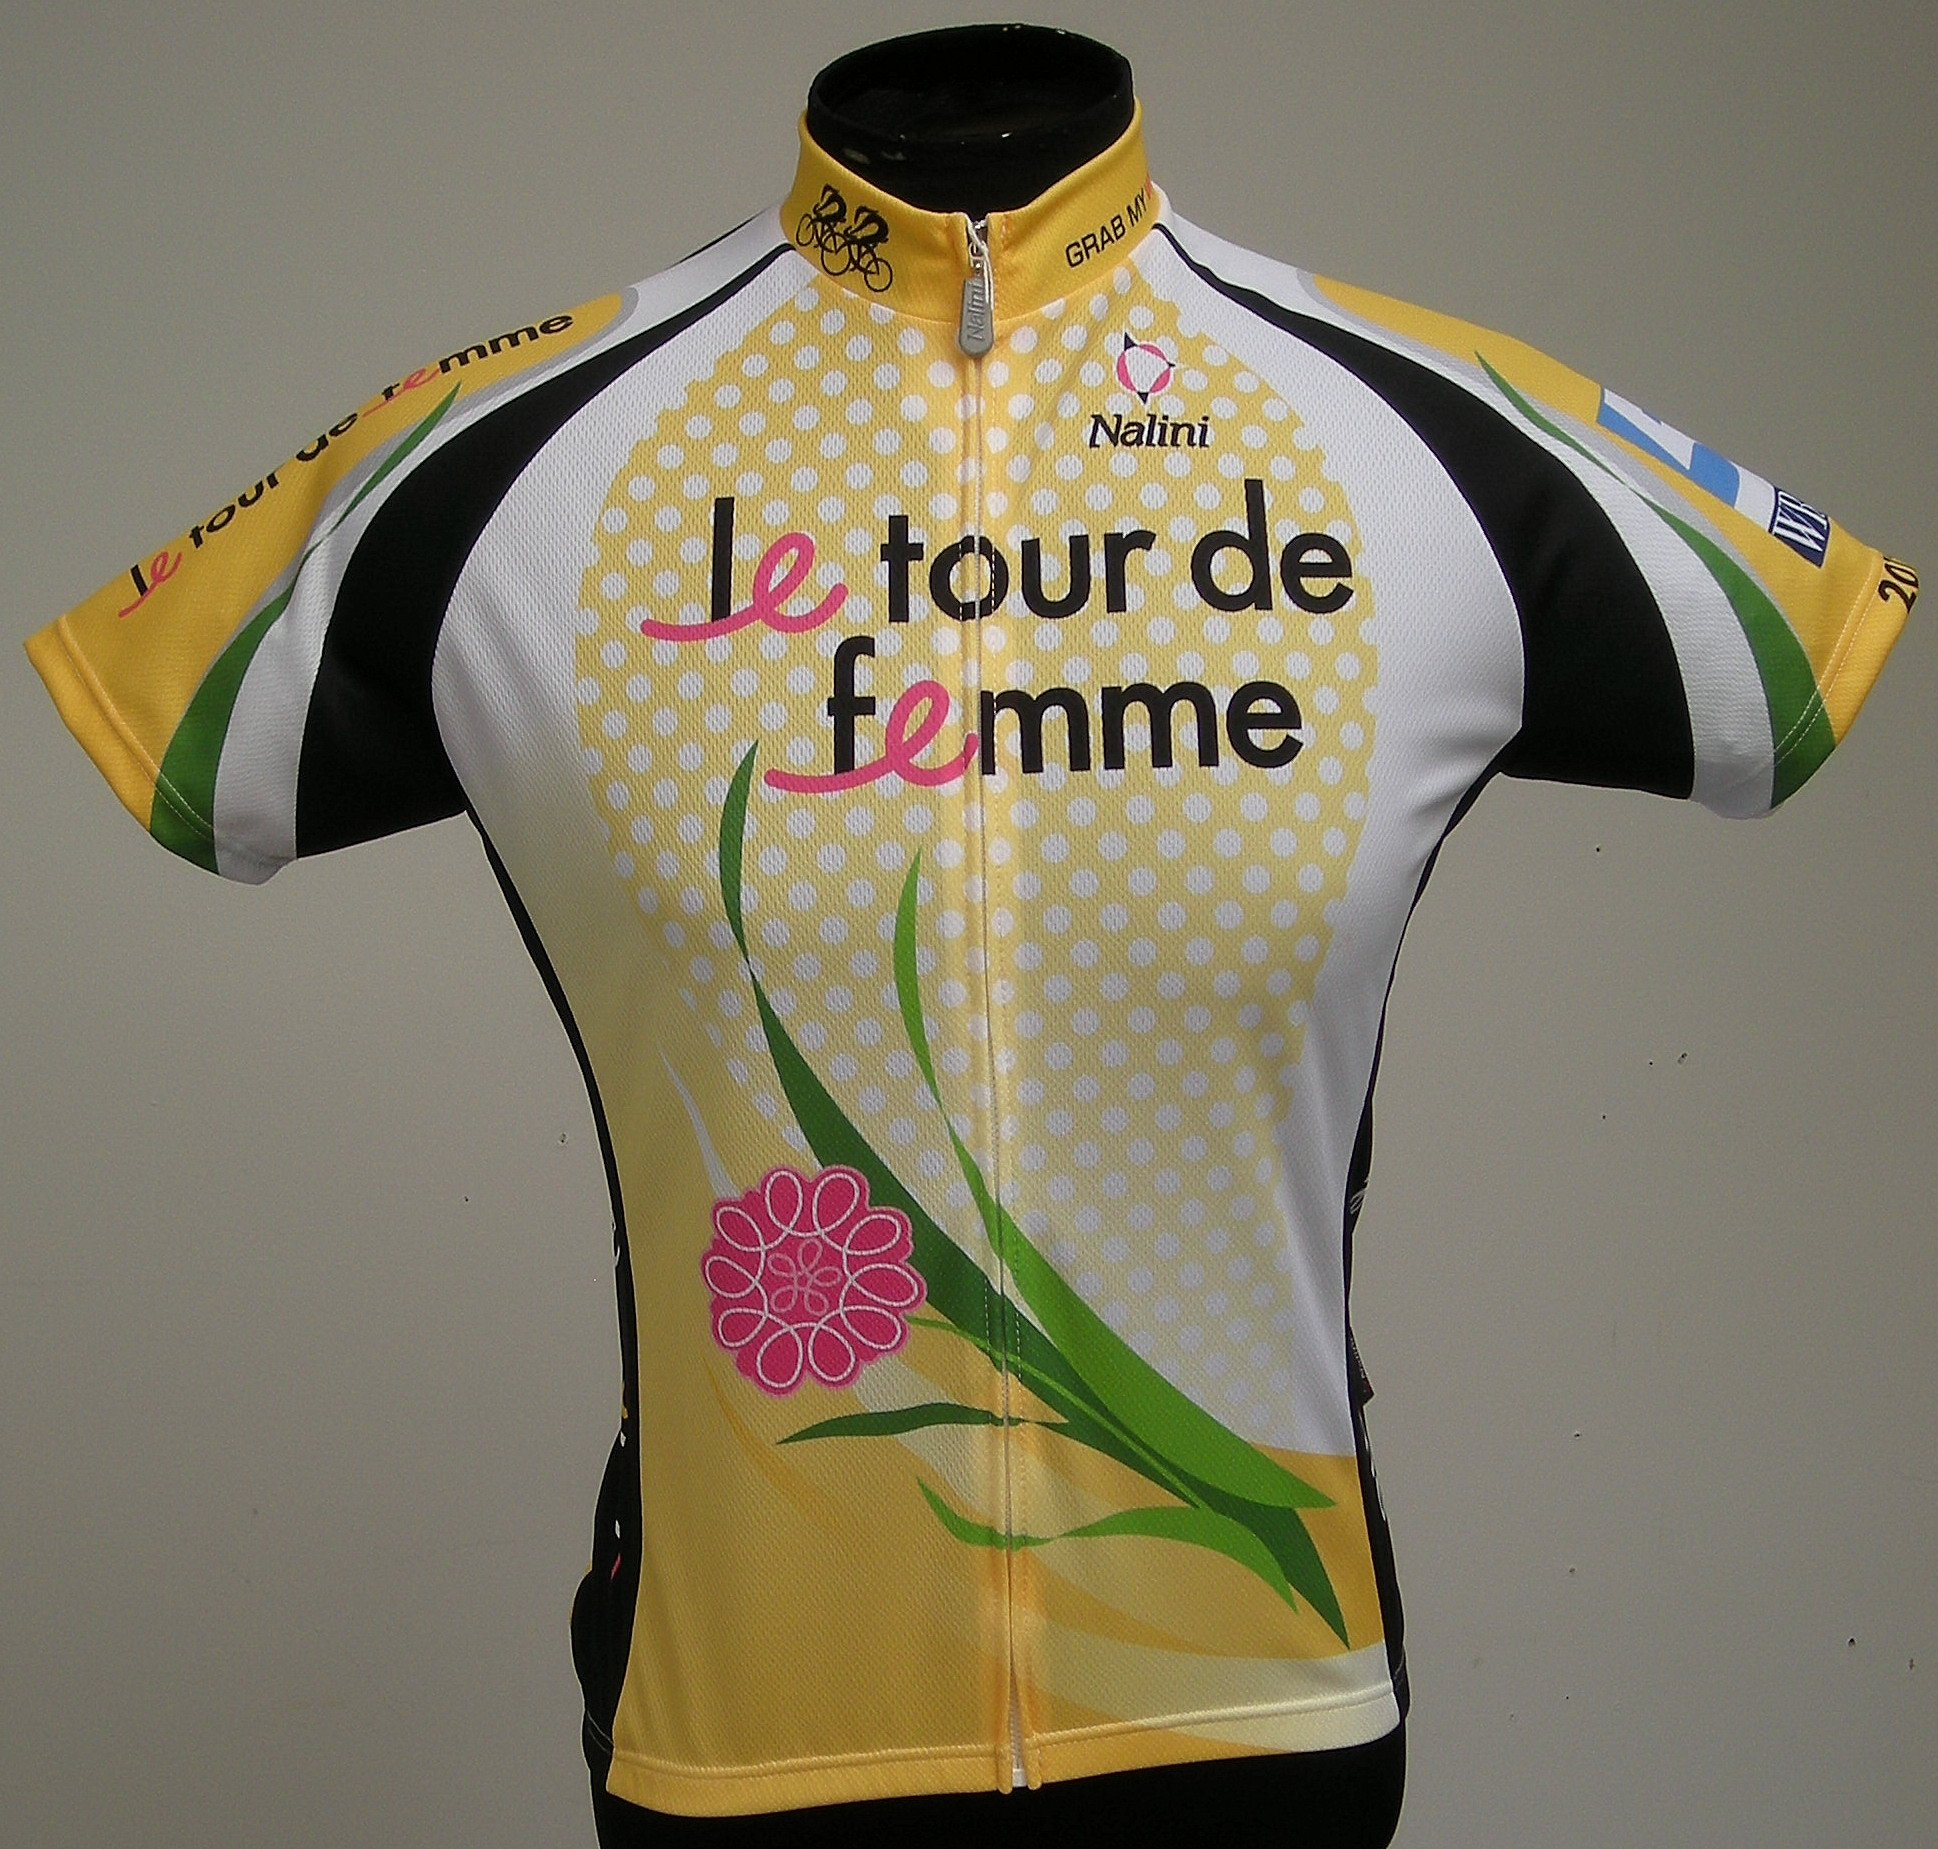 Le Tour de Femme 2012 Breast Cancer Awareness Cycling Jersey